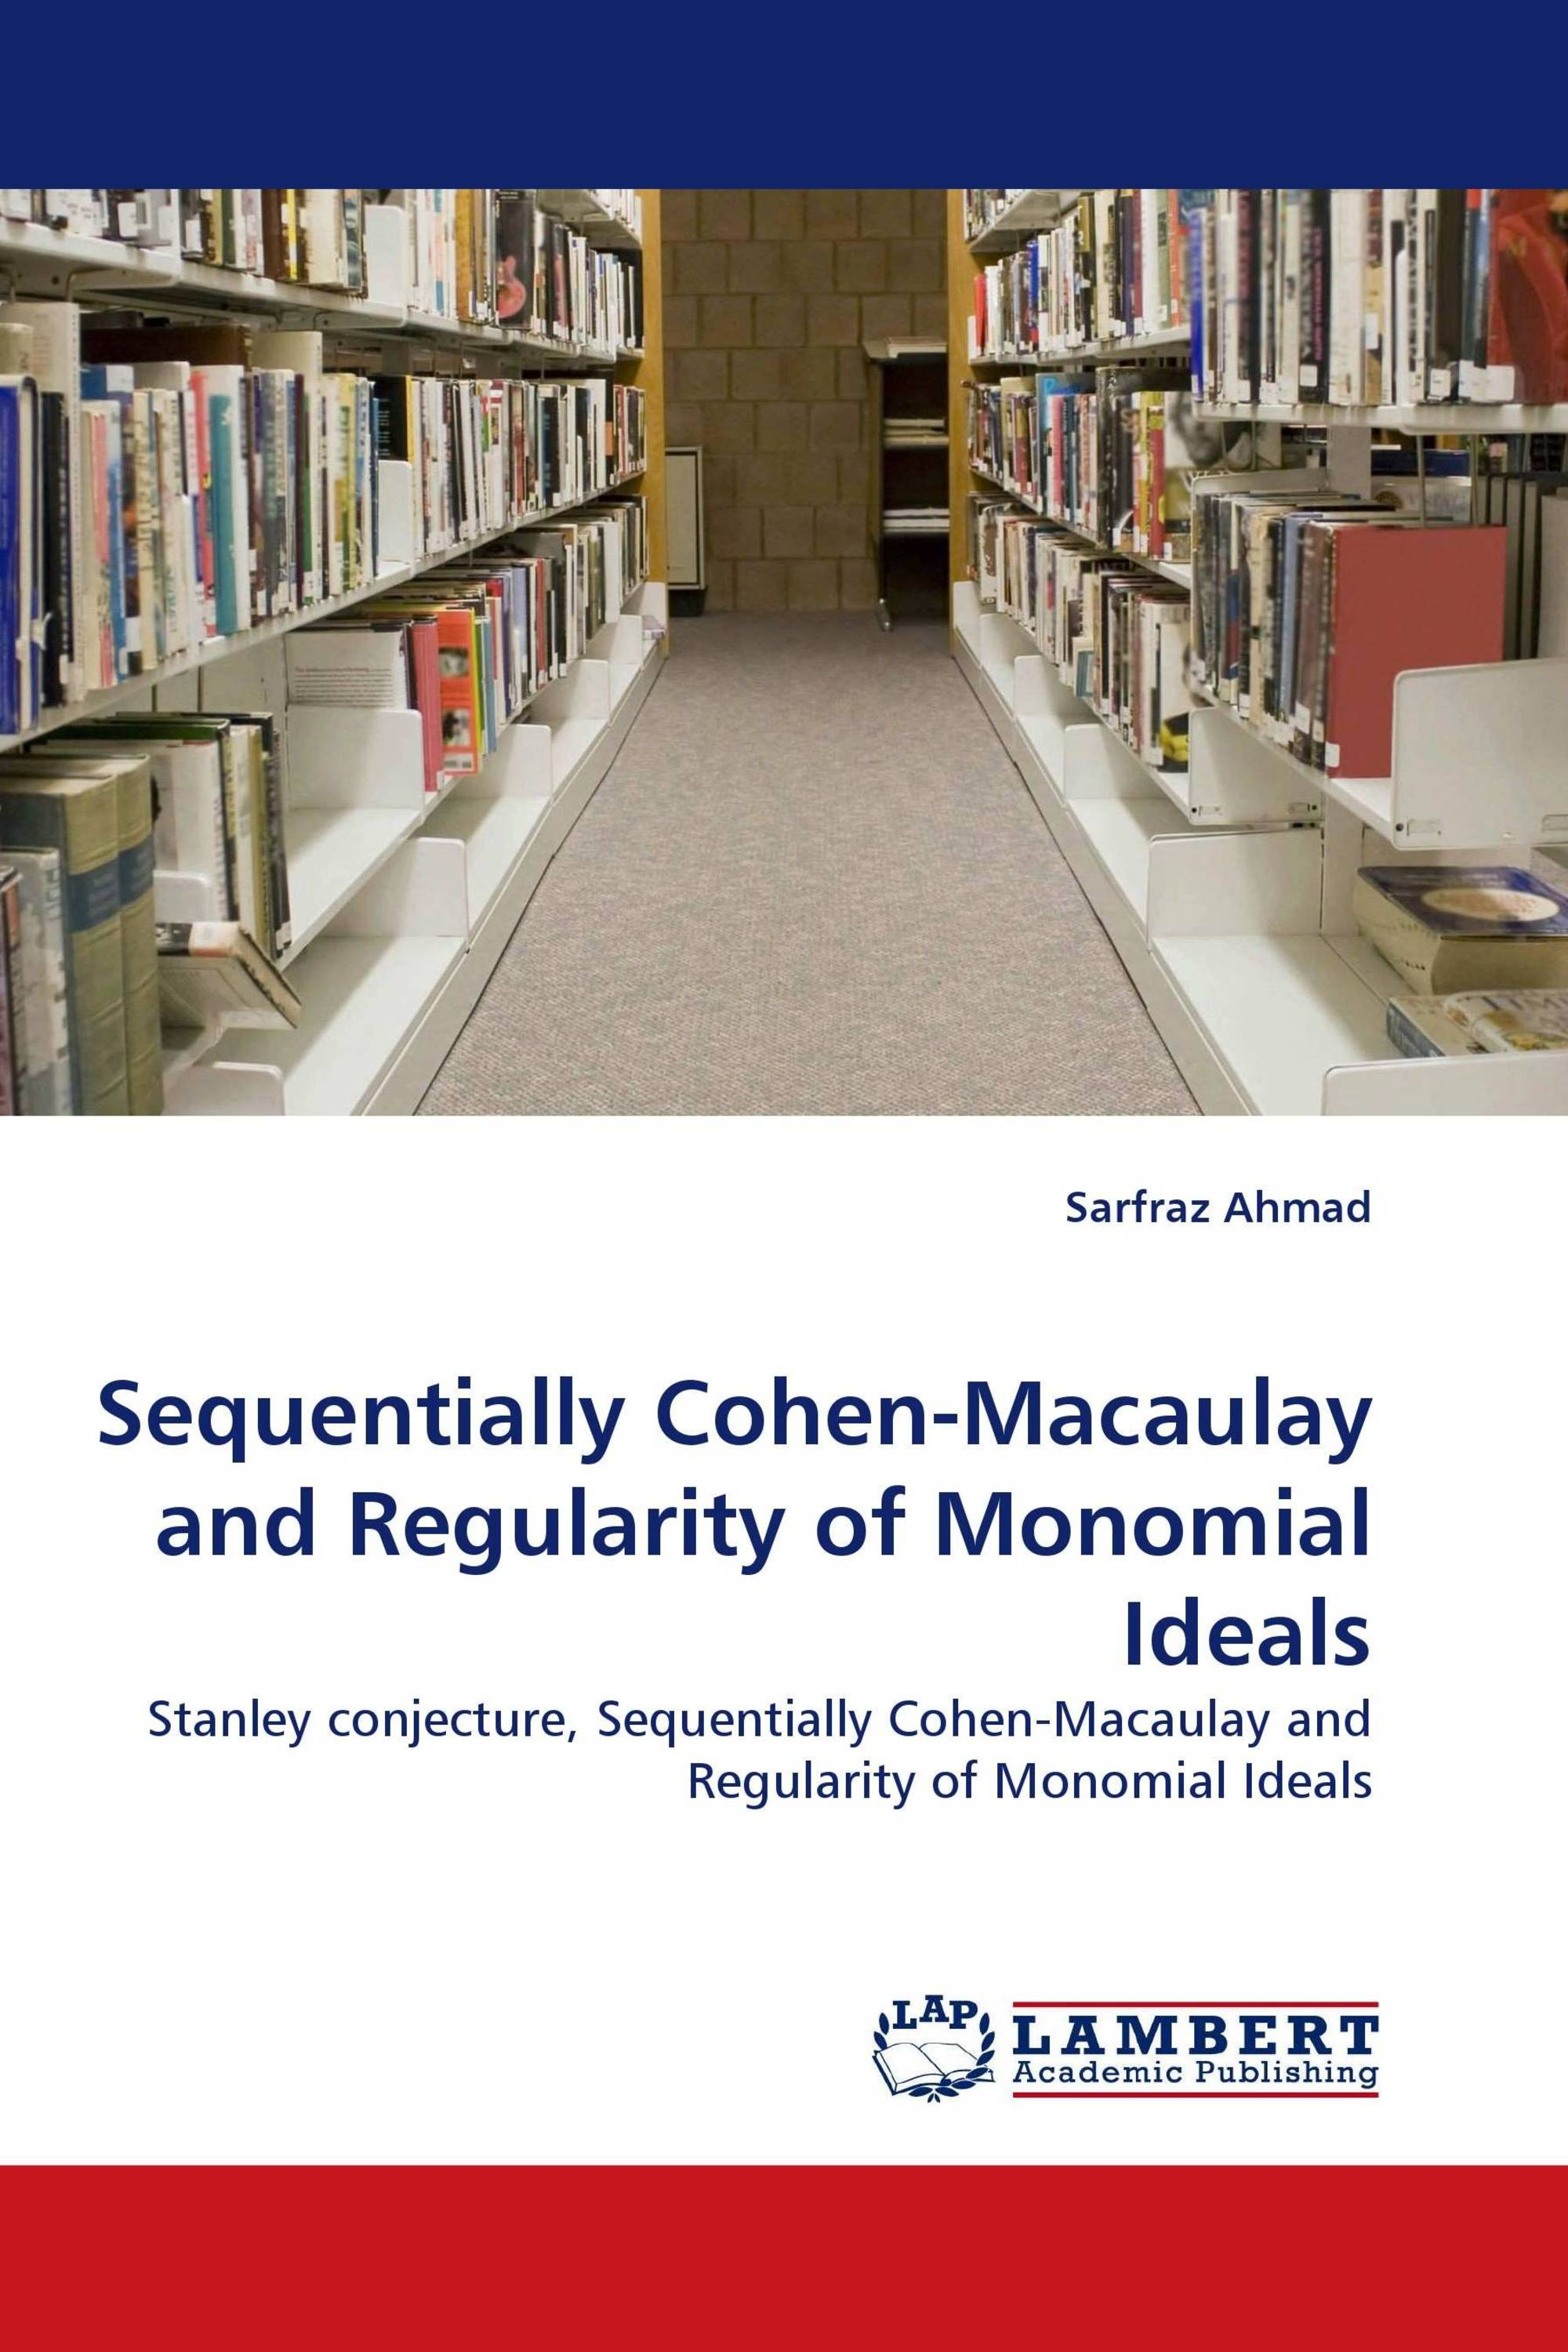 Sequentially Cohen-Macaulay and Regularity of Monomial Ideals